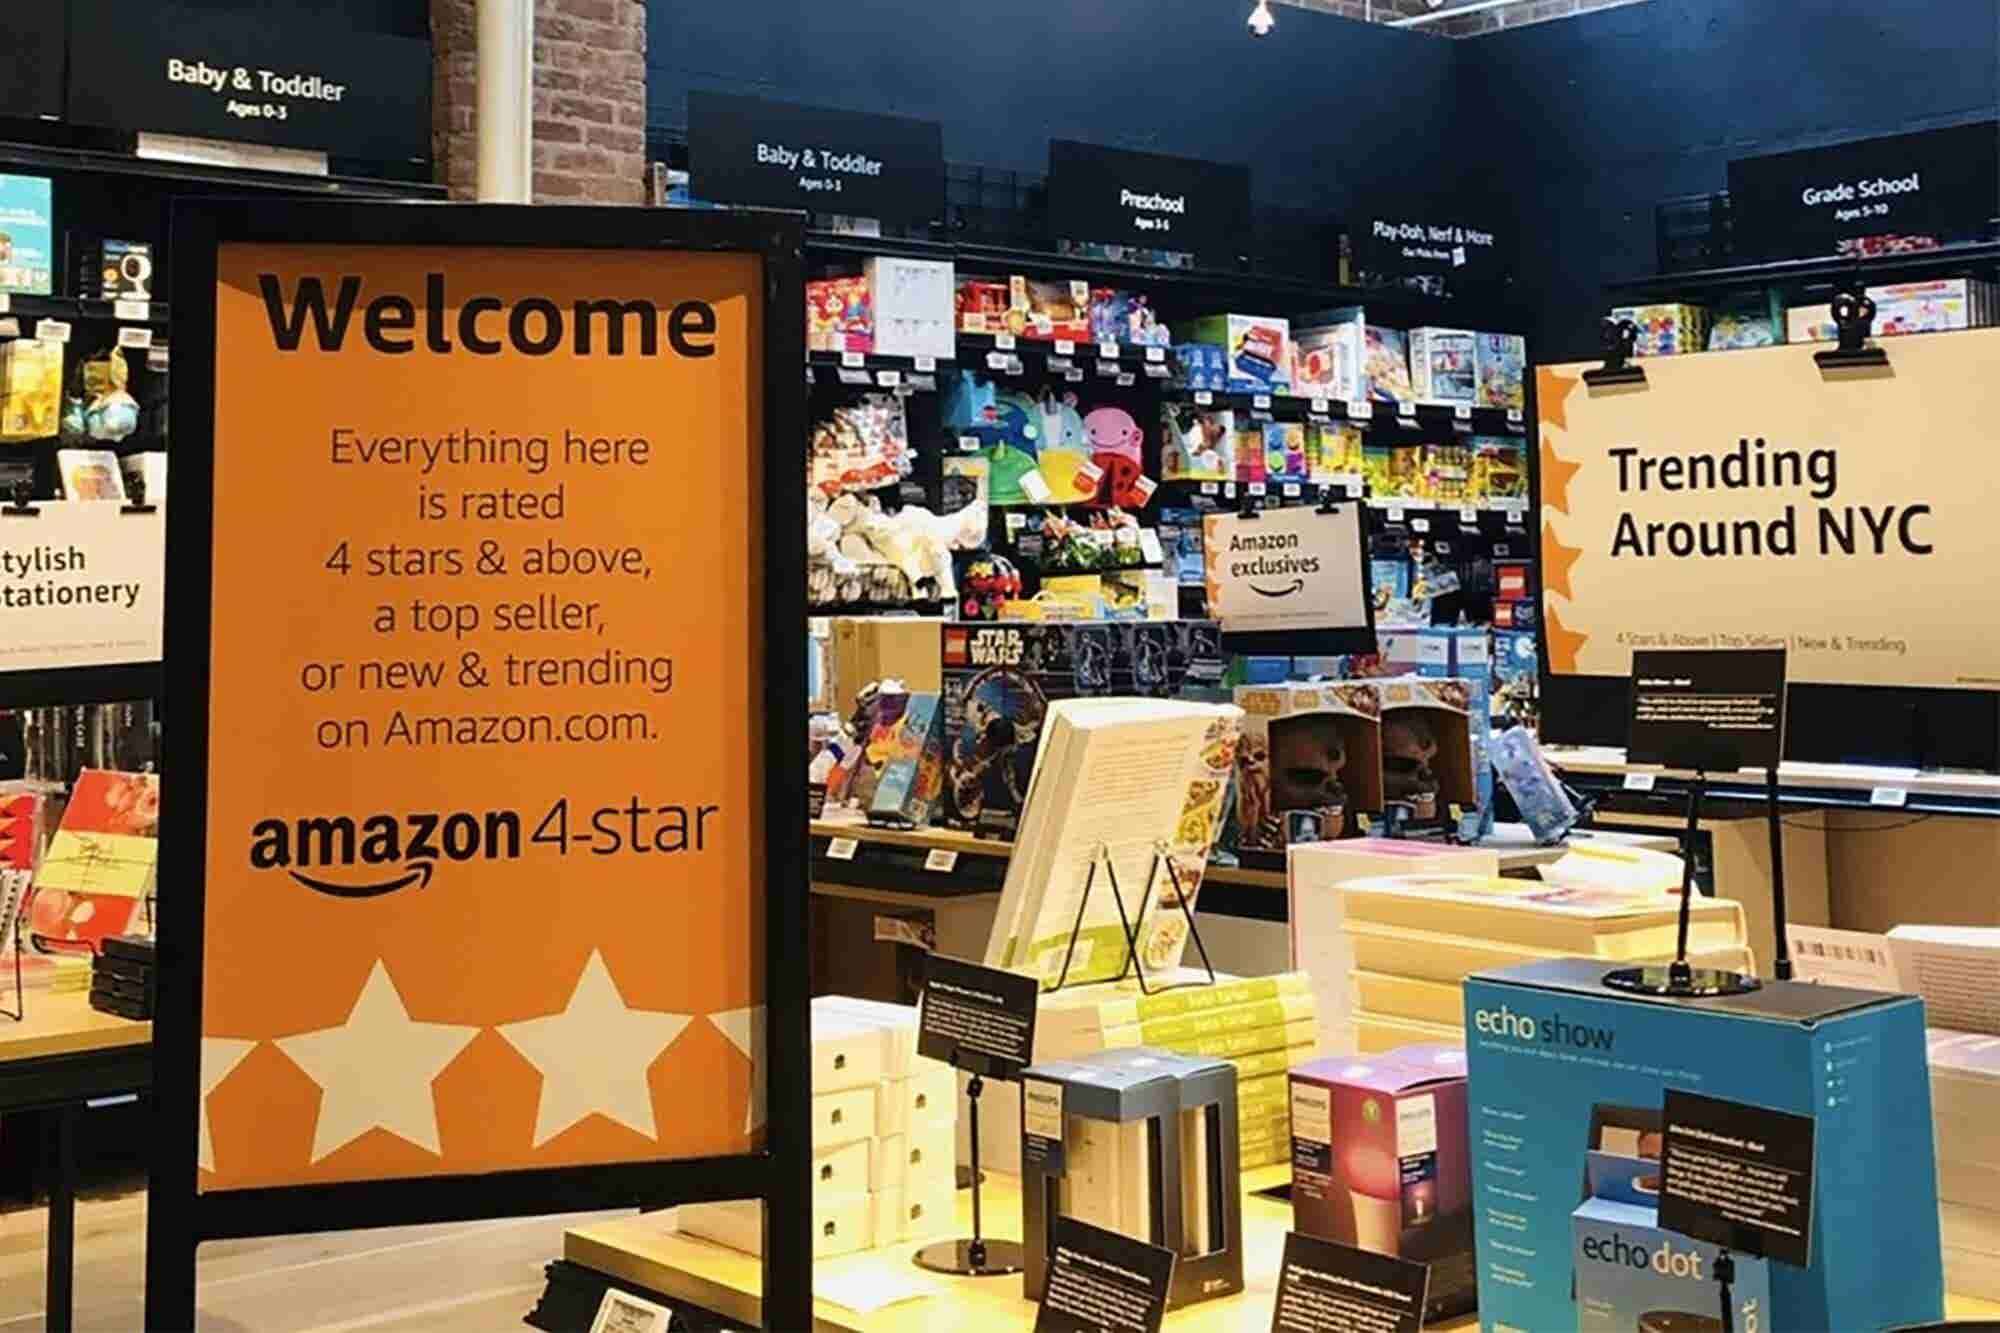 Amazon Opens 4-Star Store in New York City